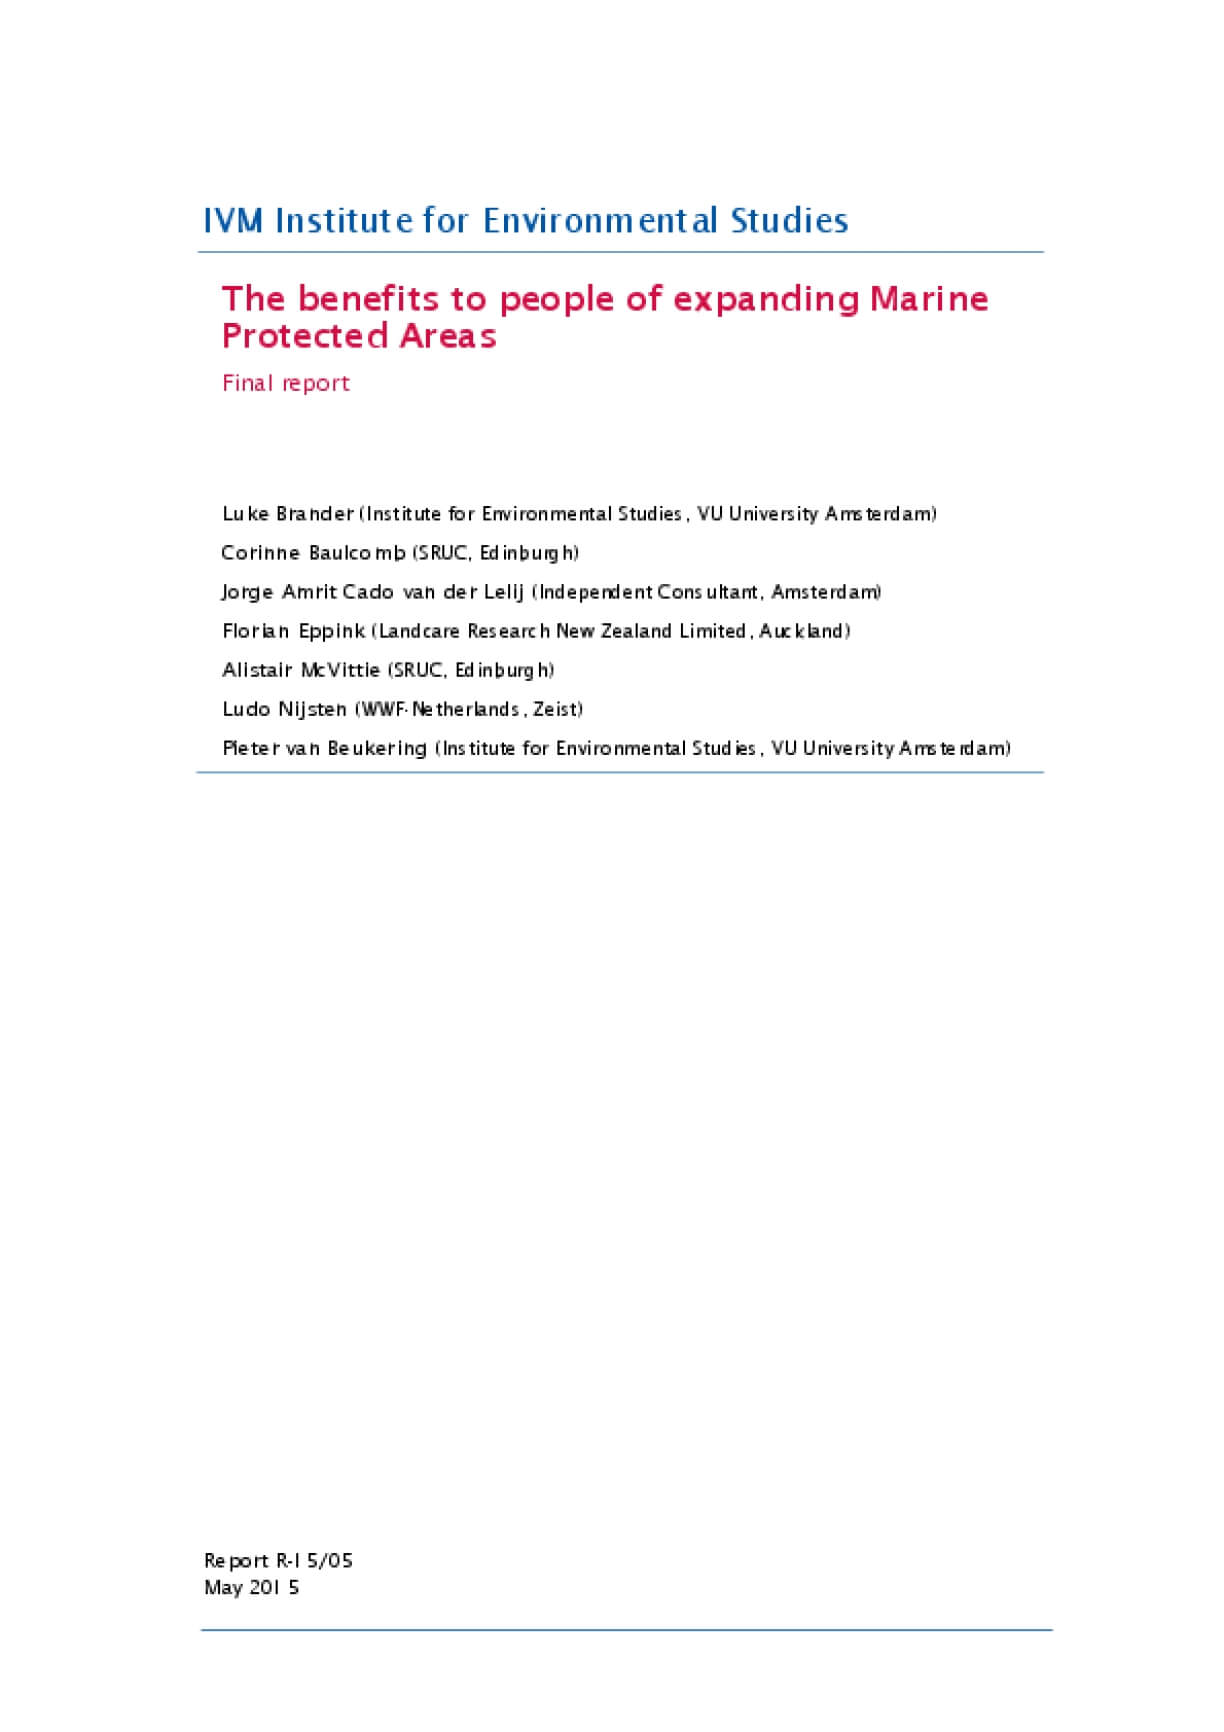 The Benefits to People of Expanding Marine Protected Areas